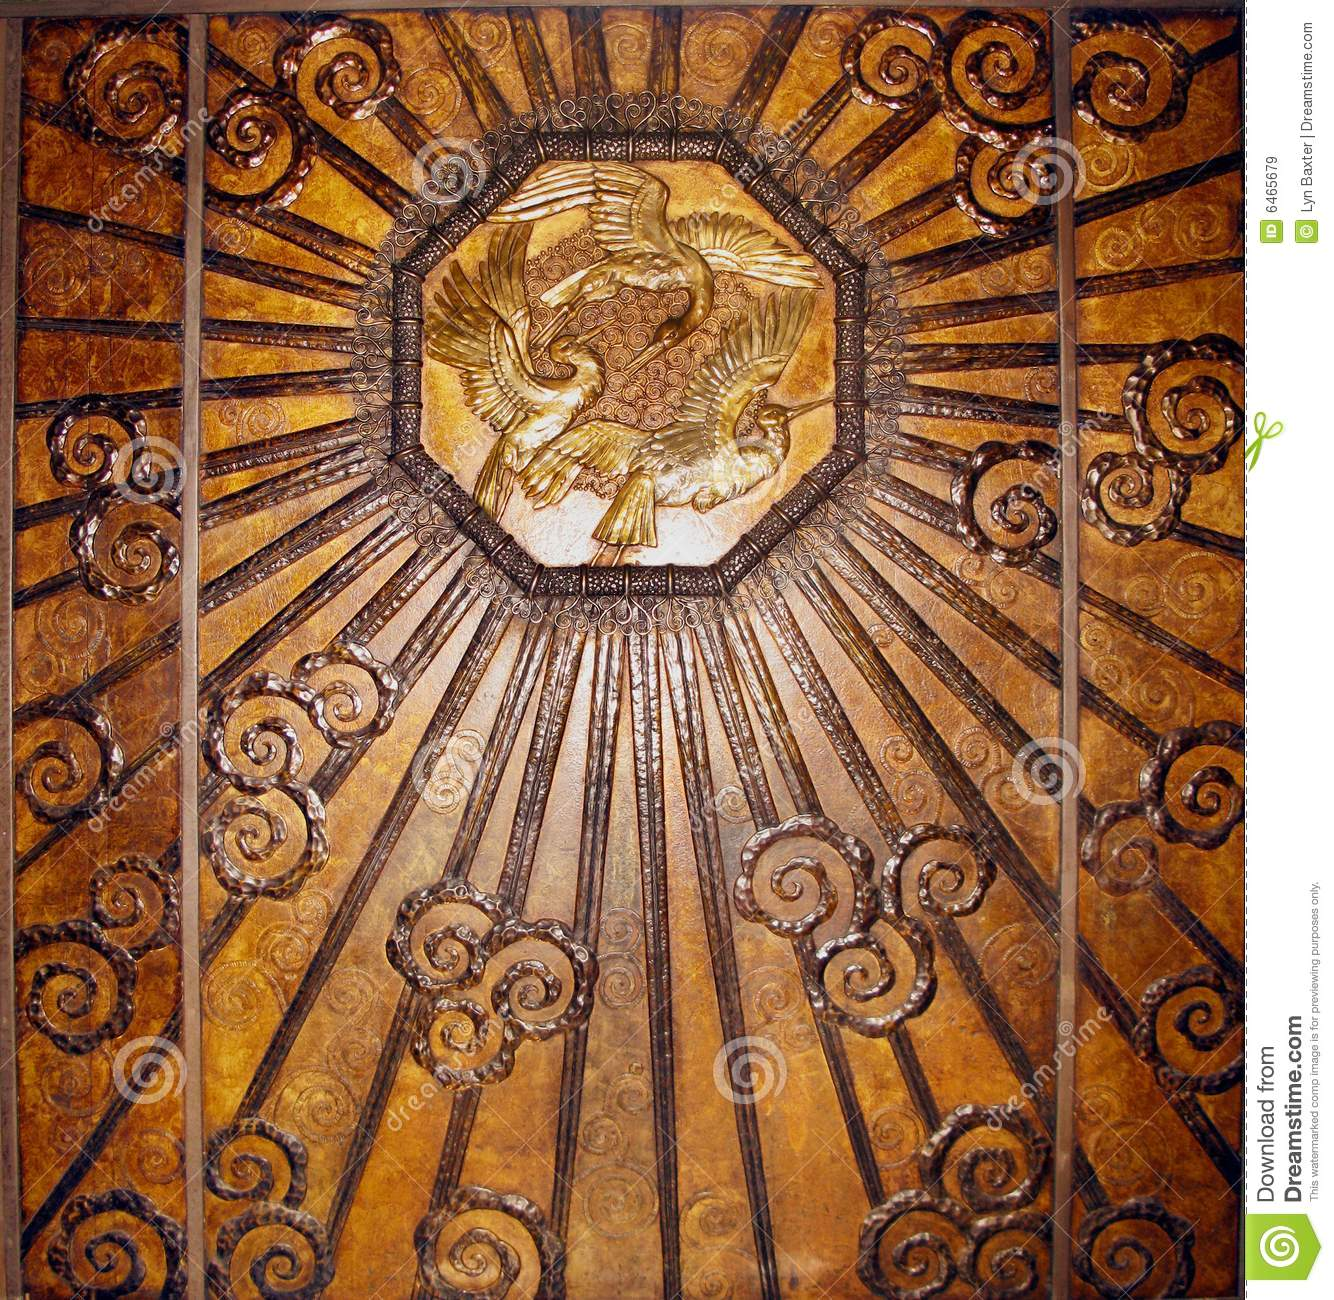 bronze art deco wall royalty free stock images image 6465679